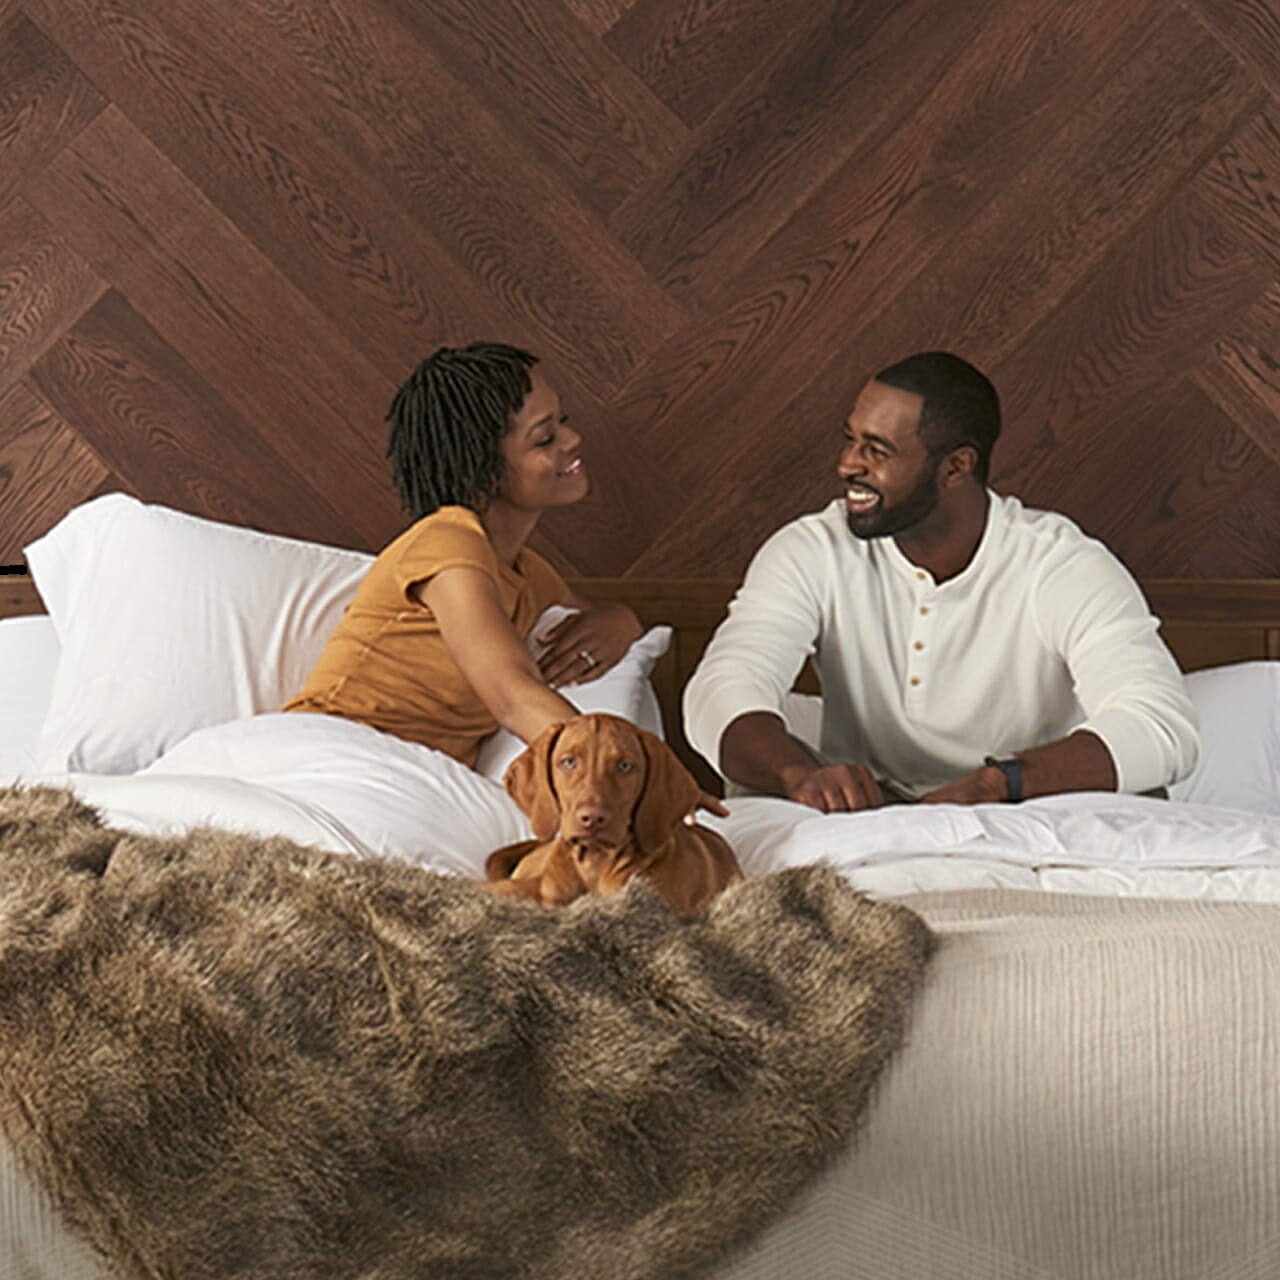 A man and a woman laying in at Tempur-pedic bed with a doggie and cozy blankets around them.